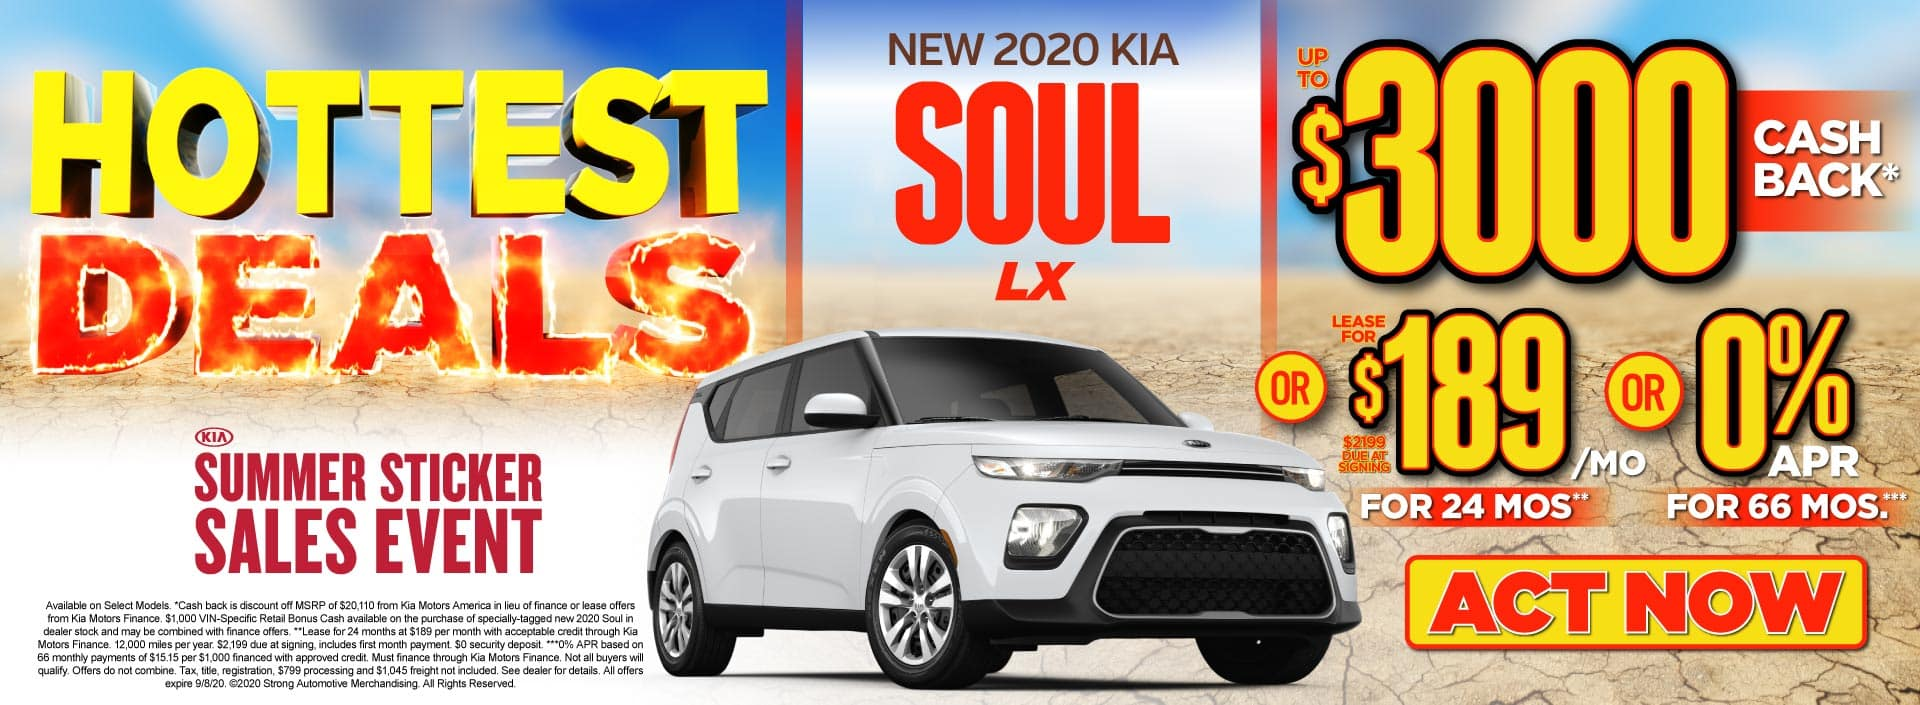 New 2020 Kia Soul up to $3000 Cash Back - ACT NOW